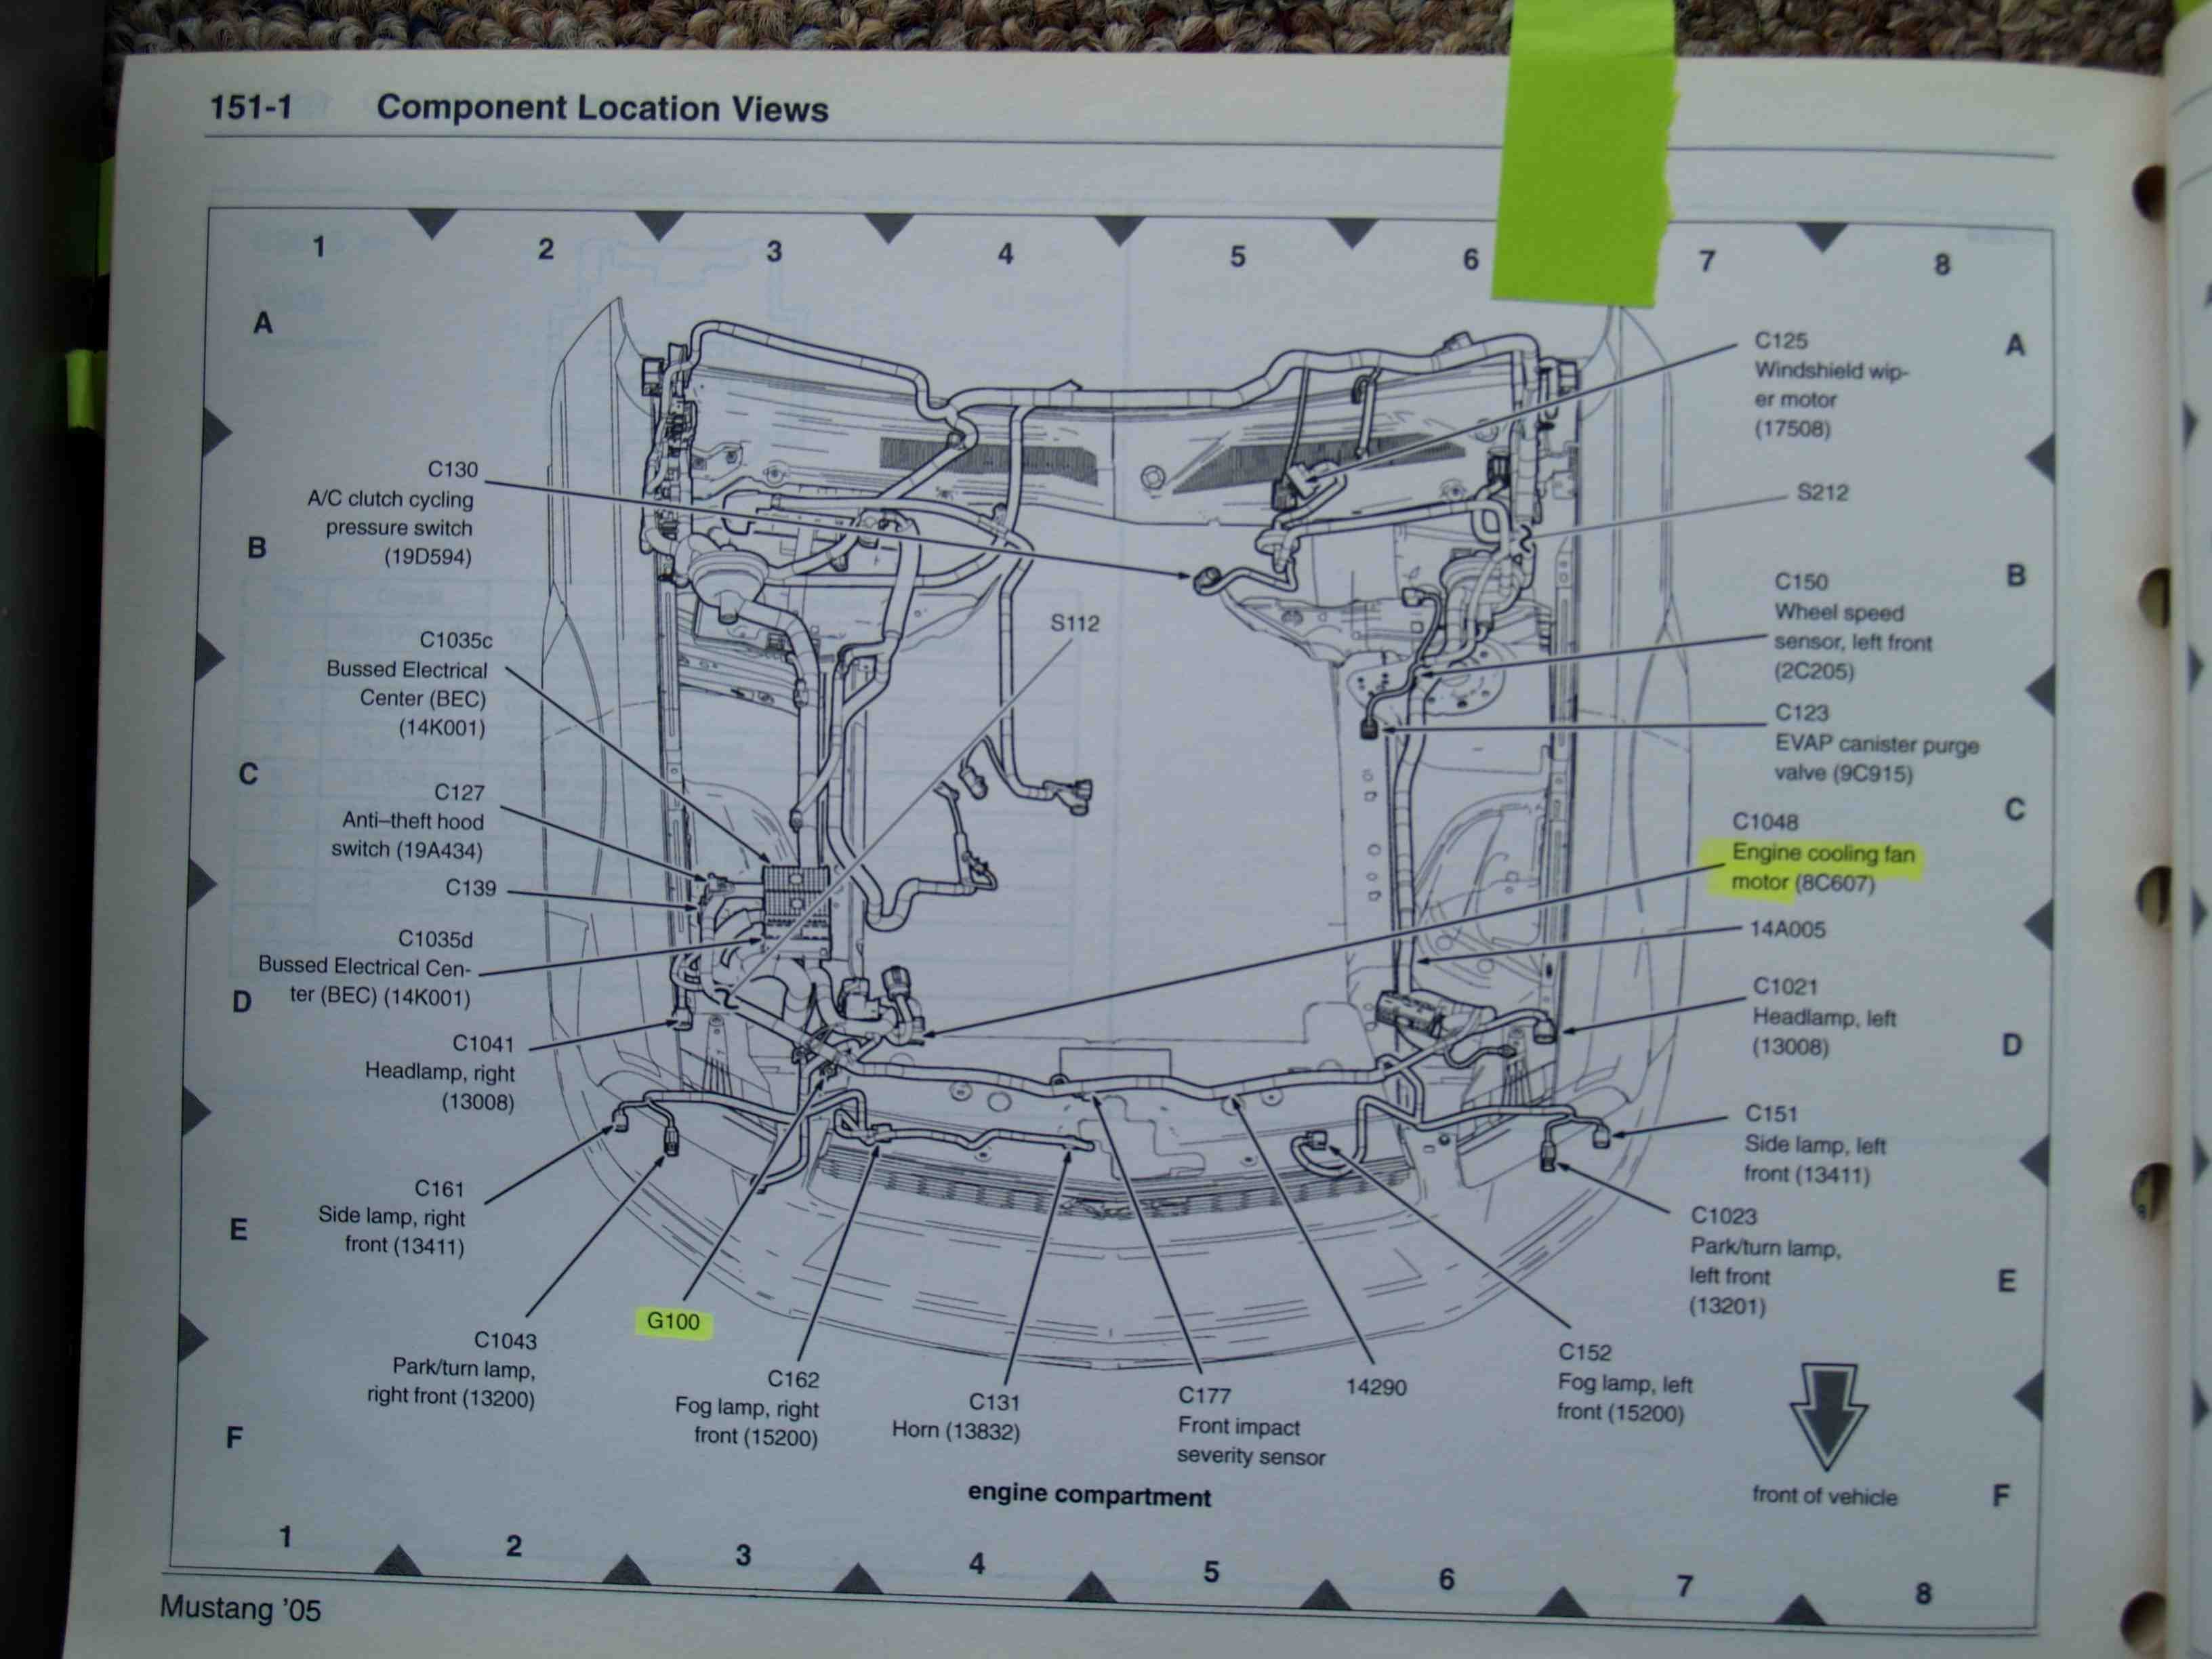 1999 ford mustang gt wiring diagram t1 line 99 04 best library 2010 lights easy diagrams 65 08